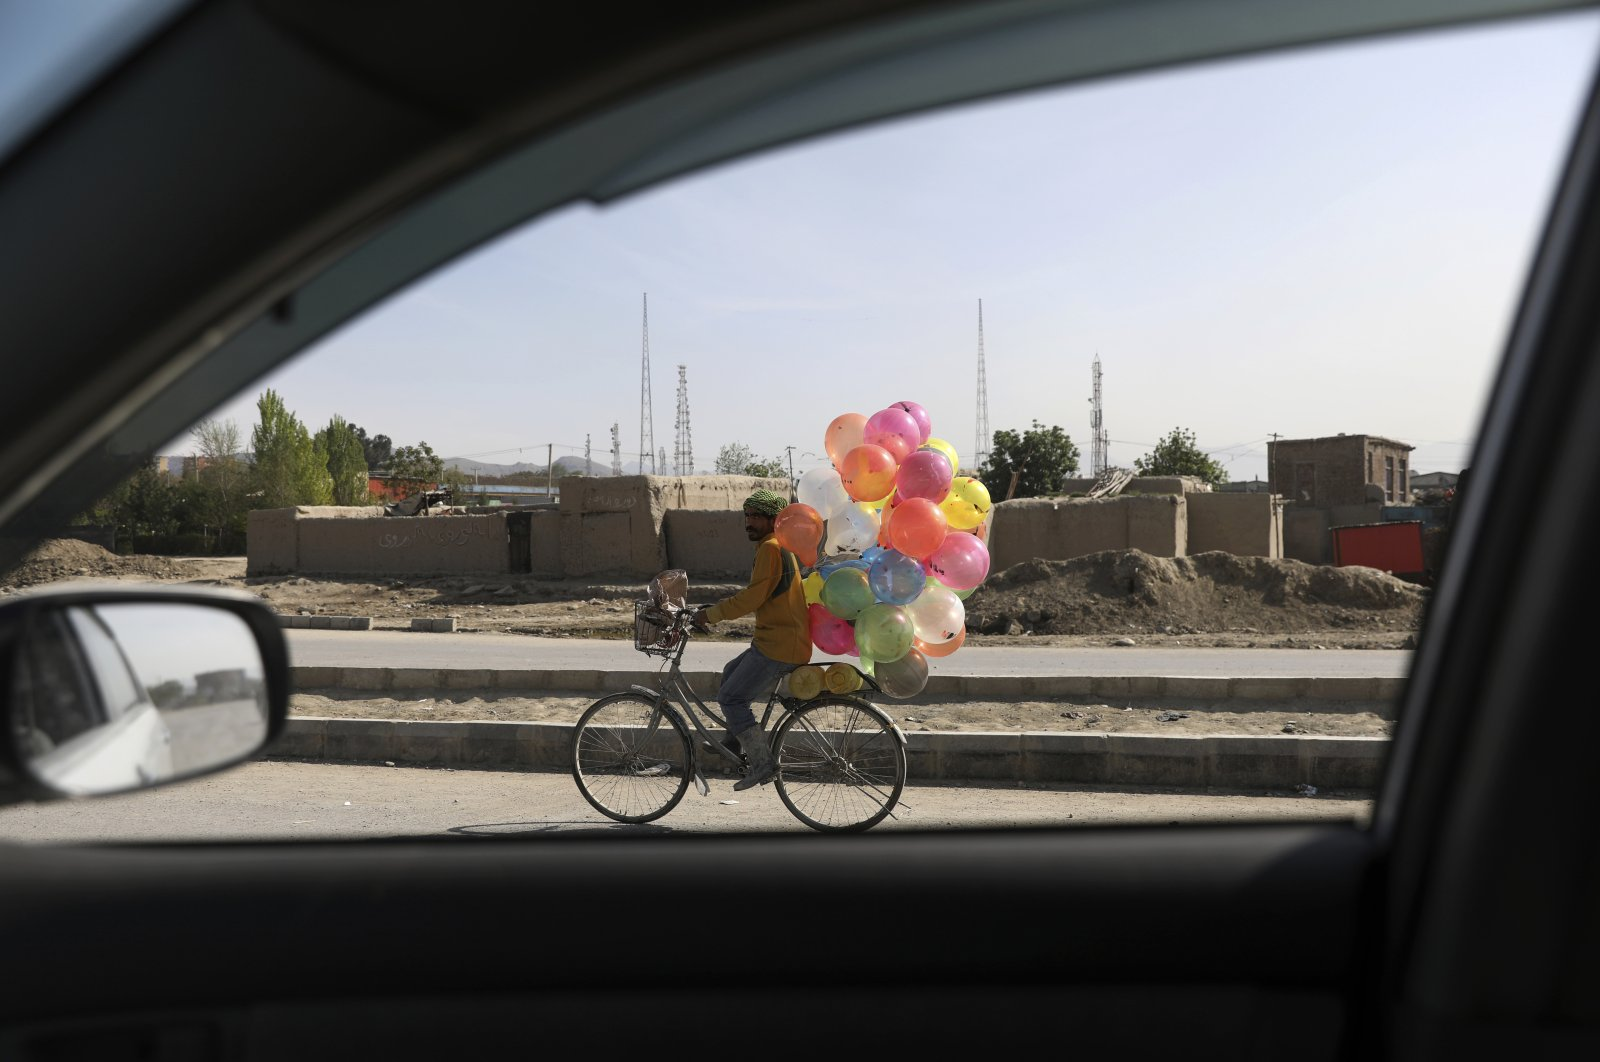 An Afghan balloon vendor riding his bicycle looks for customers in Kabul, Afghanistan, April 20, 2021. (AP Photo)